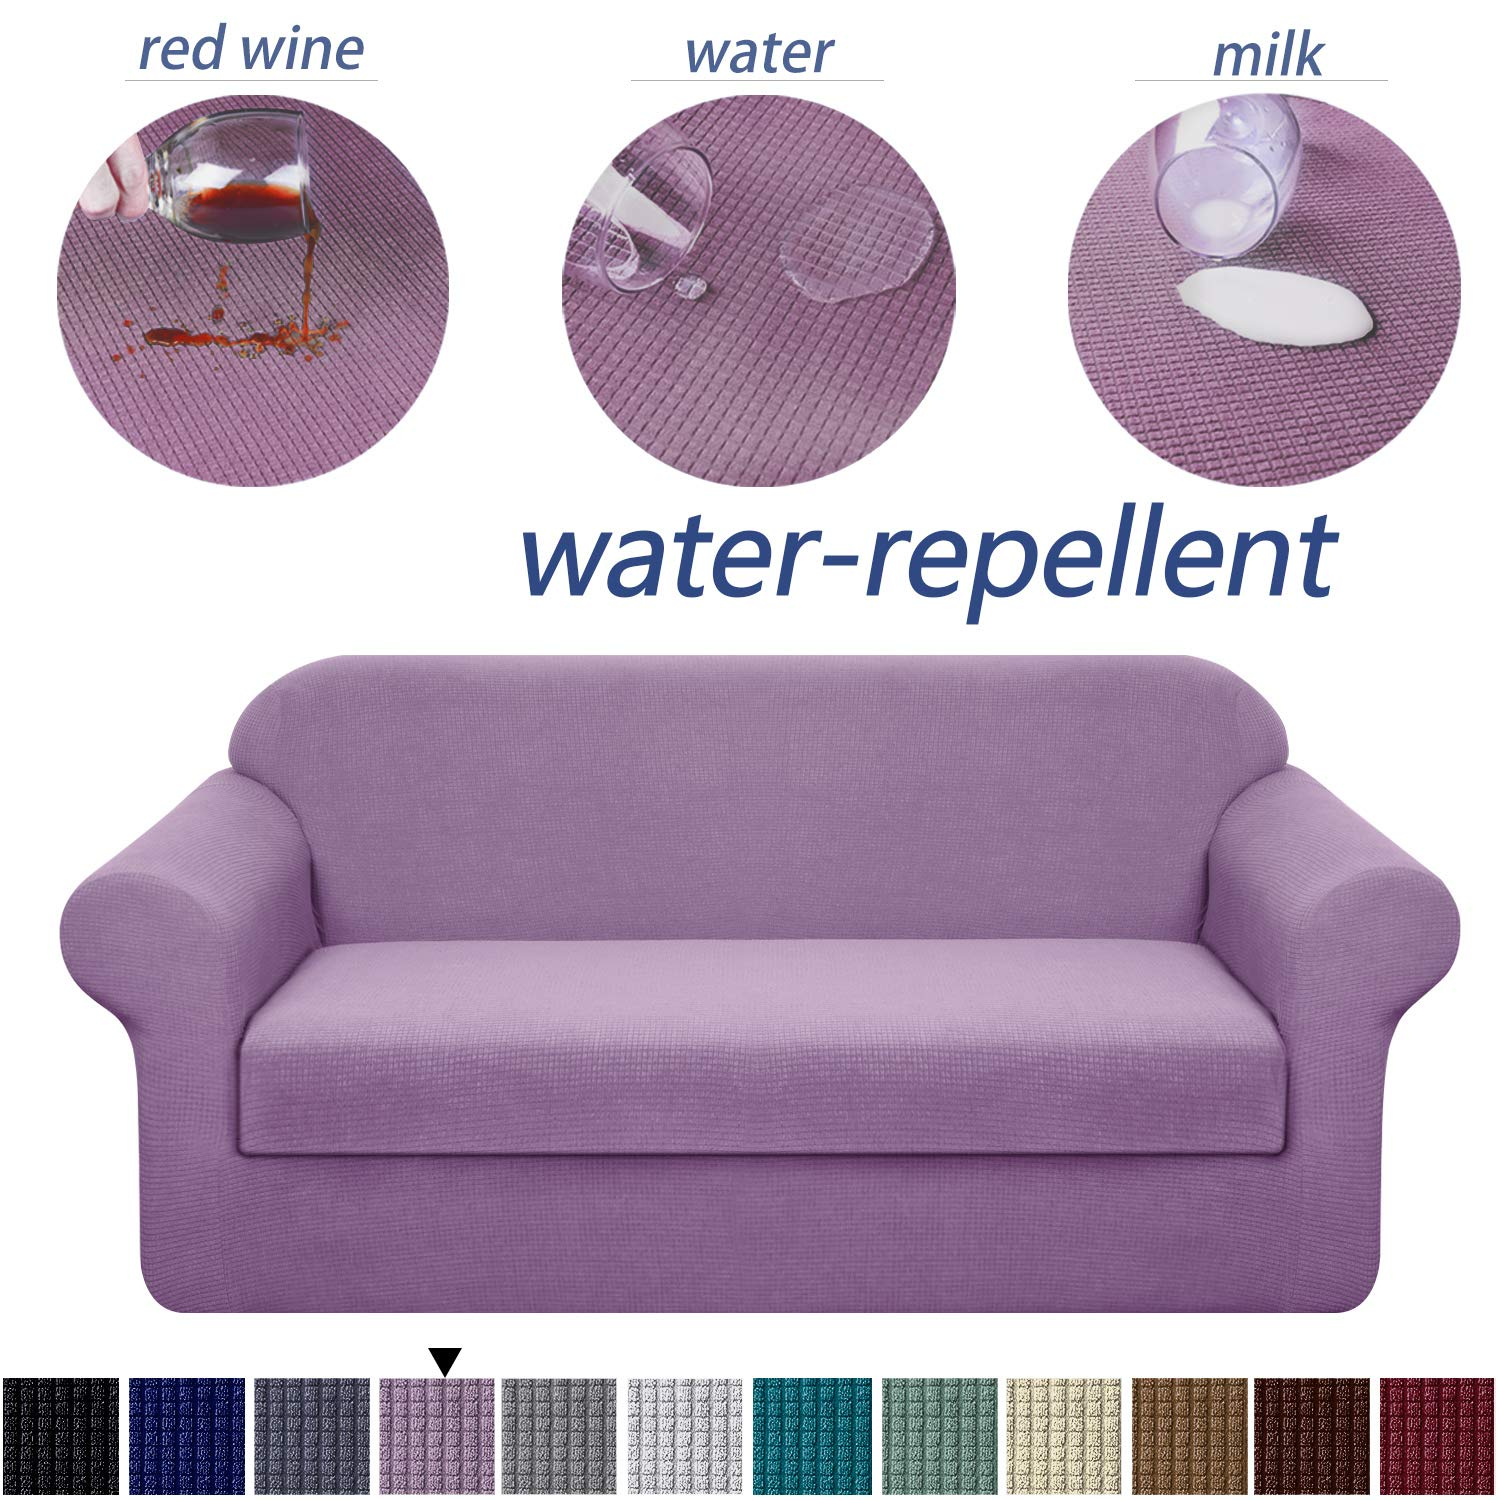 Granbest Stretch Sofa Slipcovers 3 Cushion Couch Covers Water-Repellent Pet Furniture Covers Dog Couch Protectors (Light Purple, XLarge-2 Pieces)